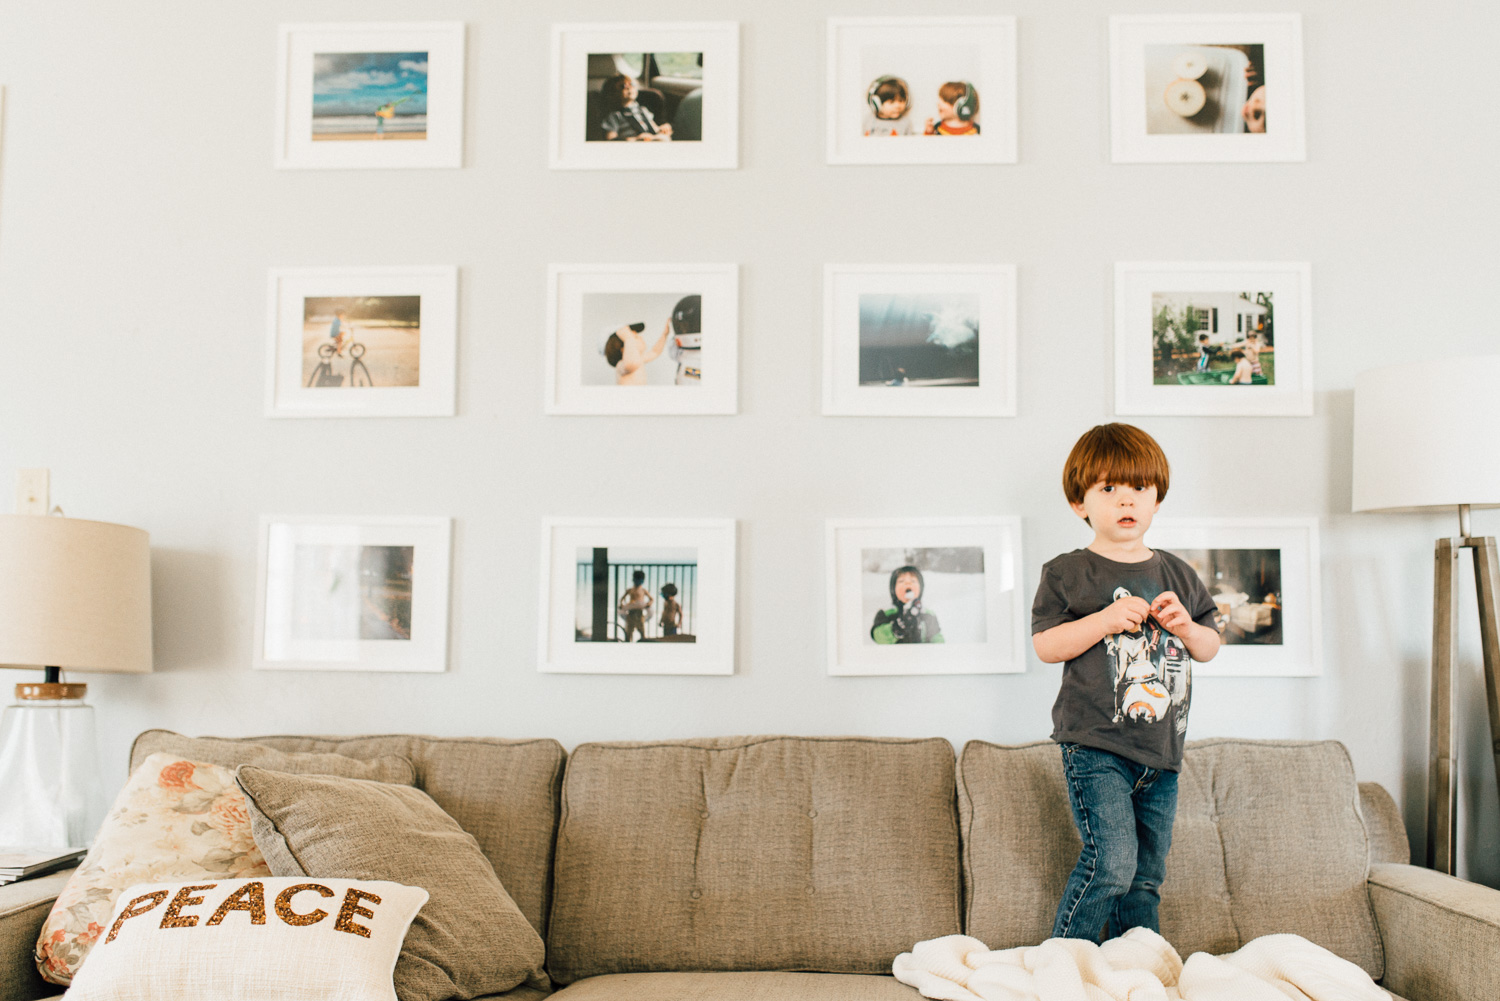 Pictured above: My family's gallery wall includes 12 8x10 prints that I change every summer.